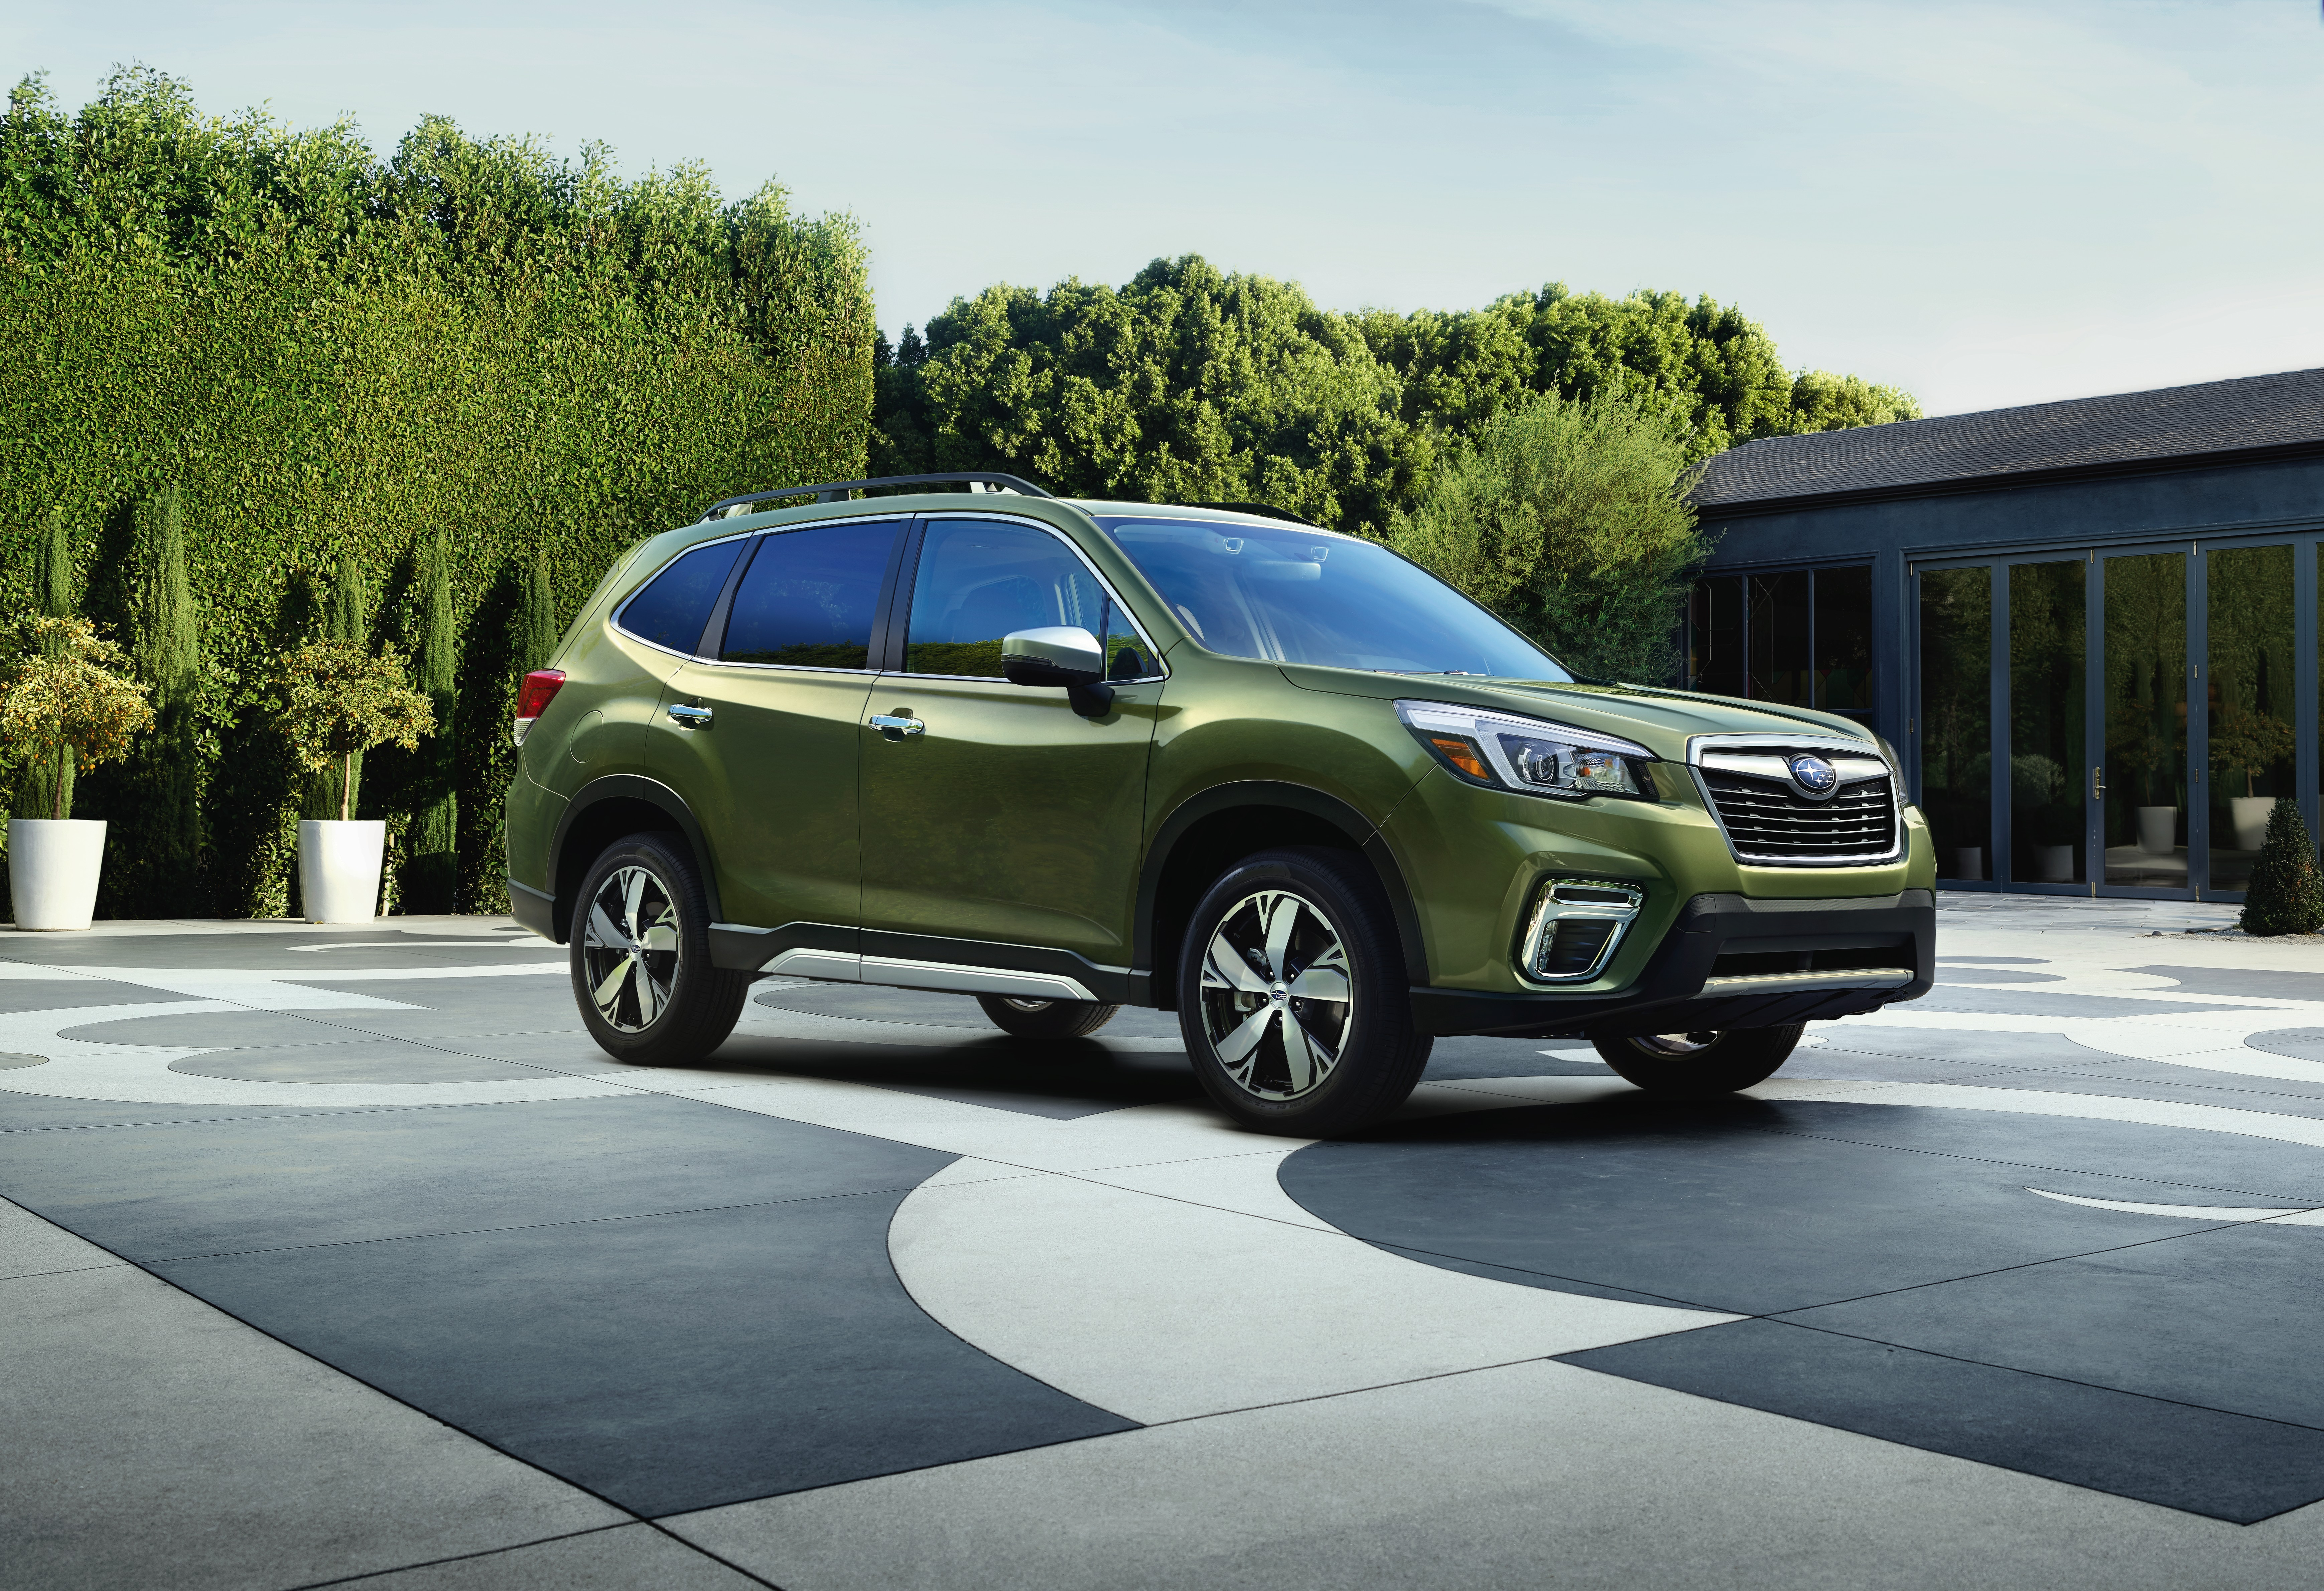 2019 Subaru Forester 13% ultra-high-strength steel, has lots